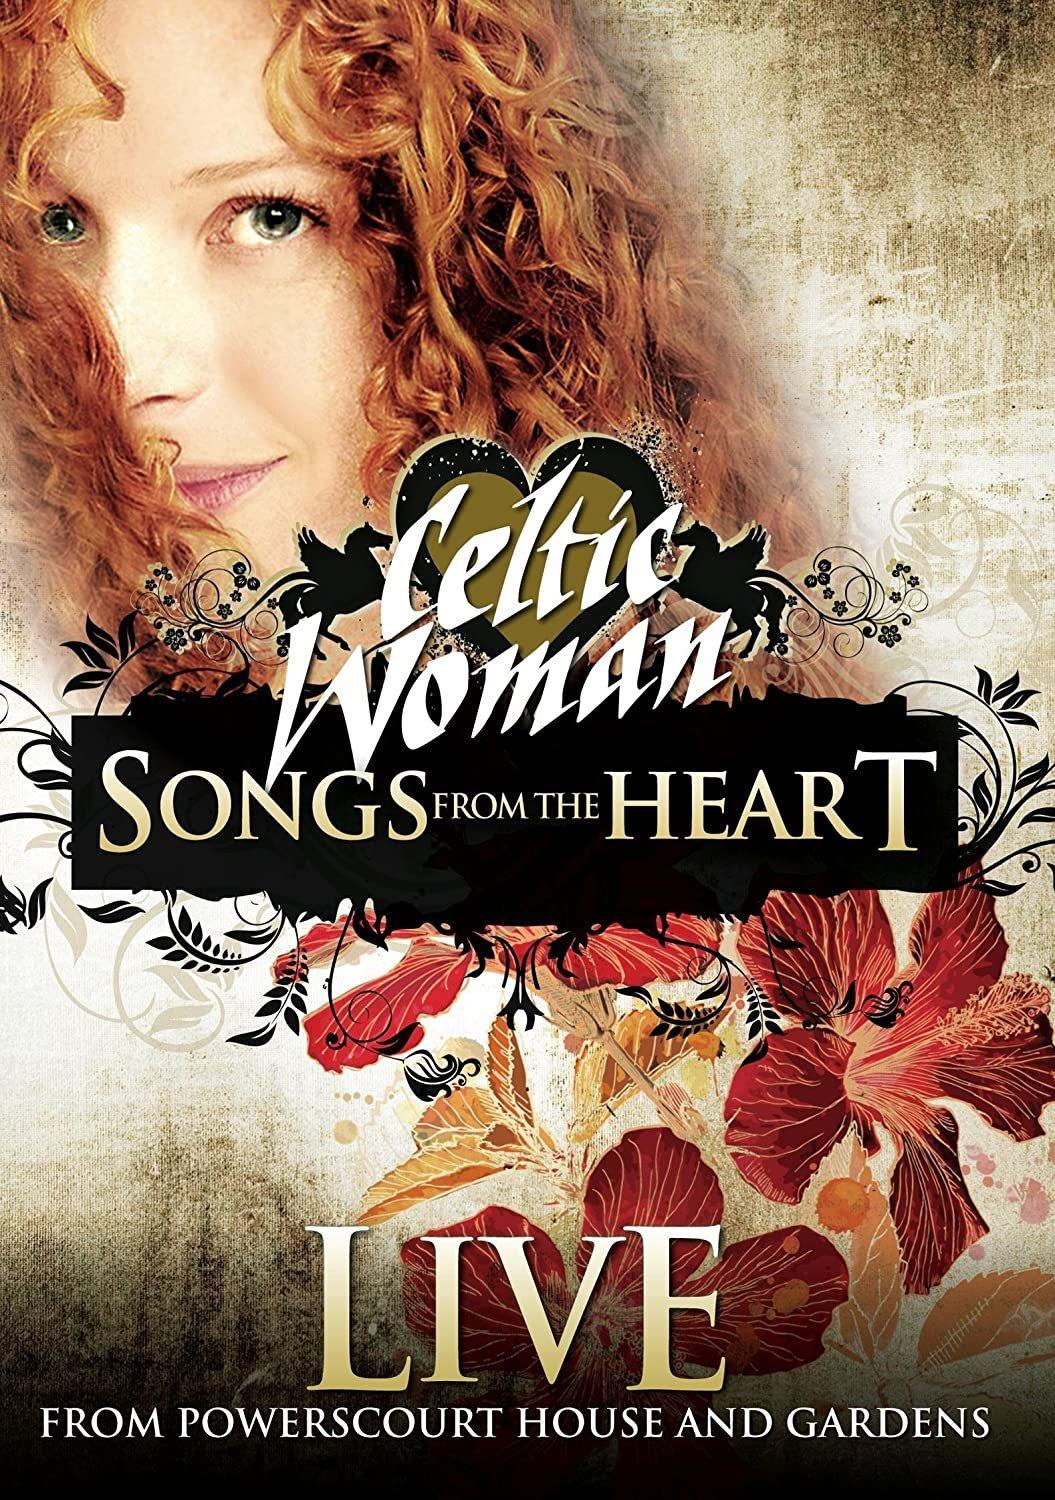 Songs from the heart by celtic woman   dvd